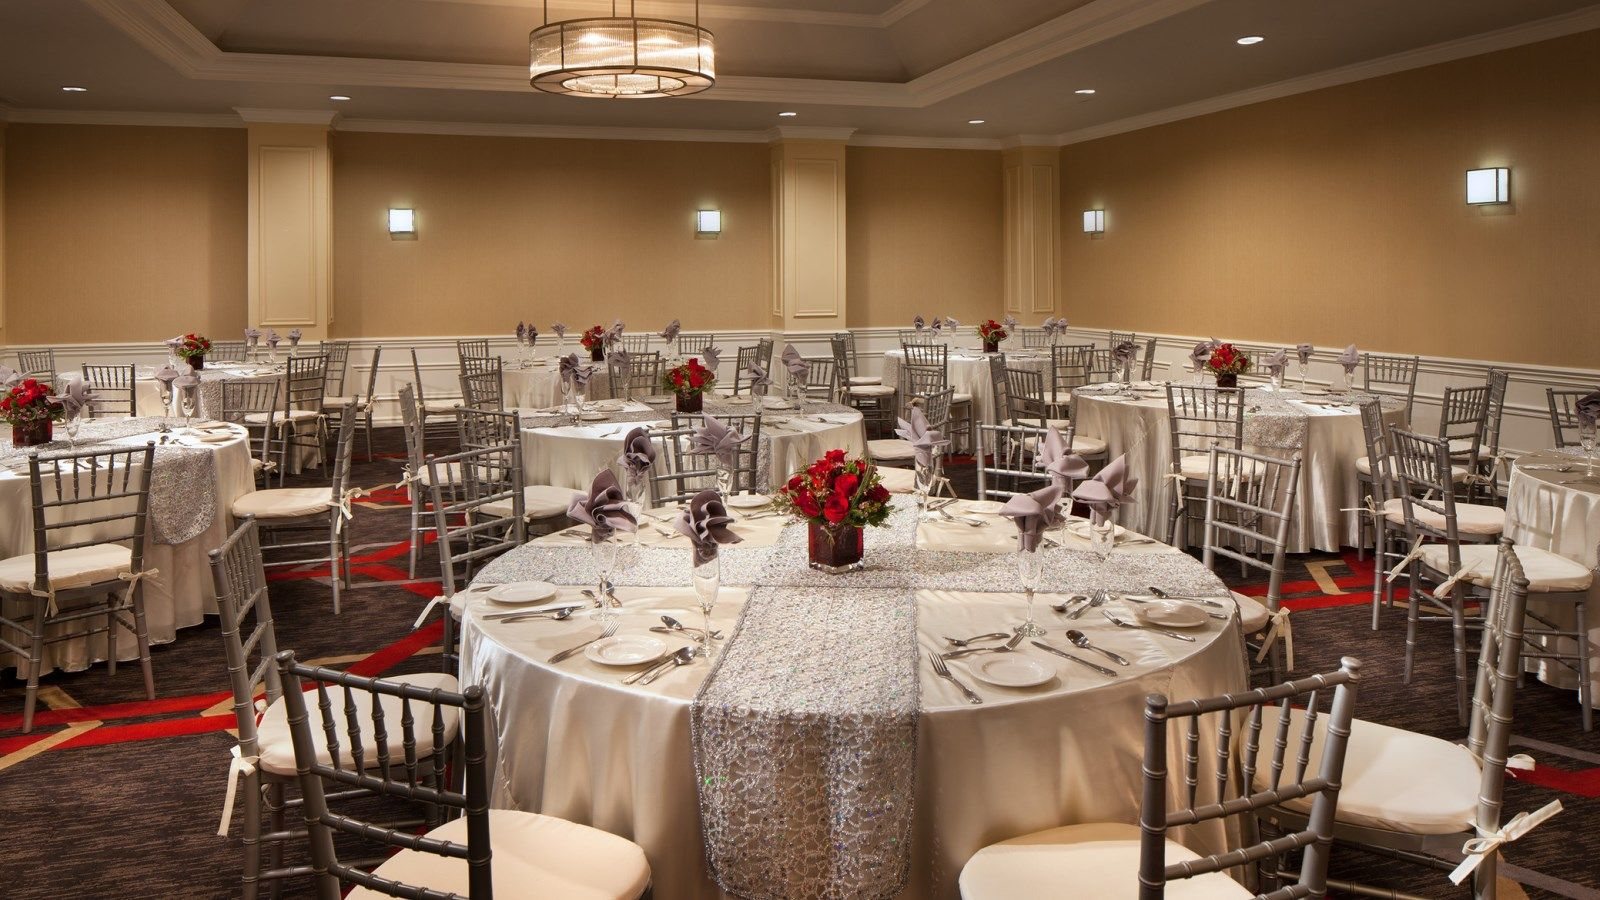 Wedding Venues San Jose - Banquet Space